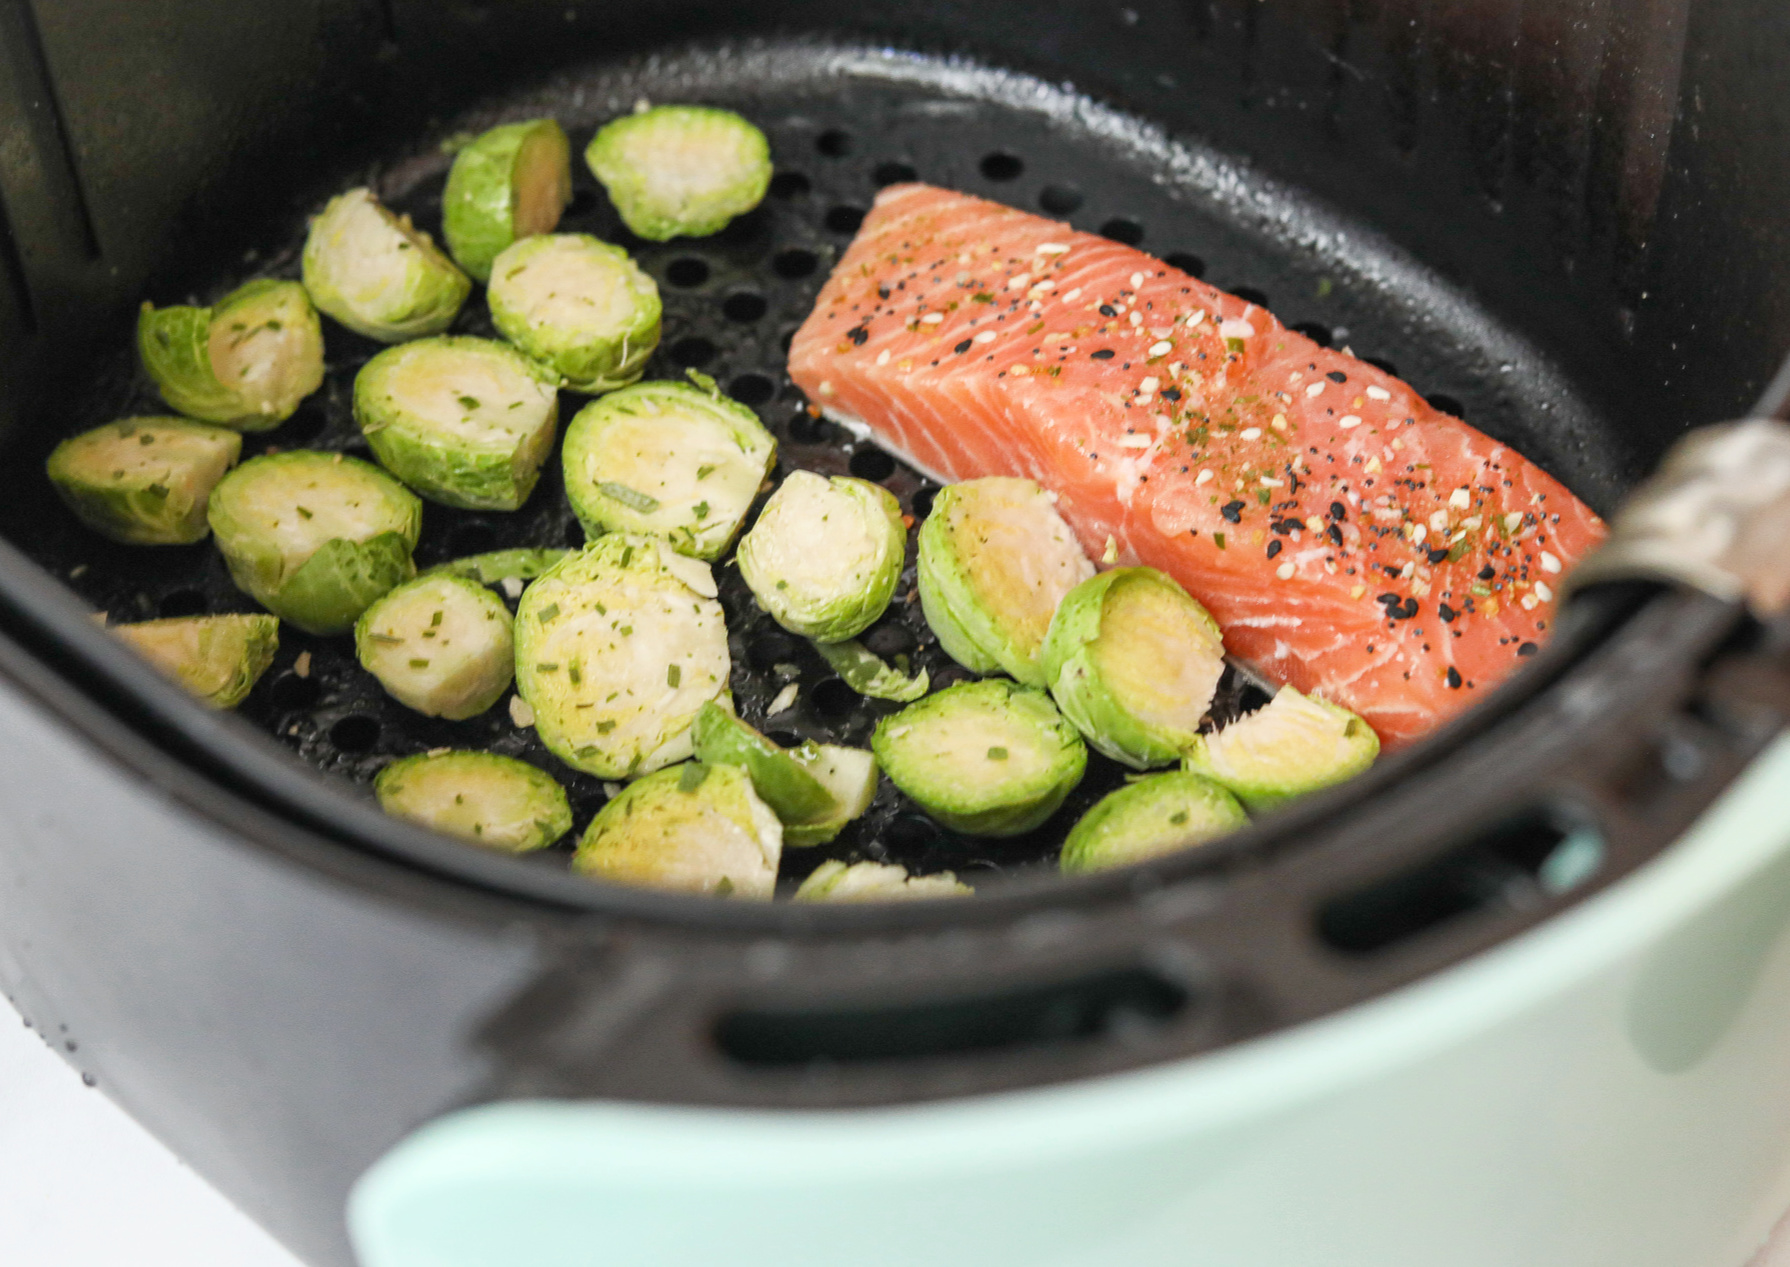 air fryer salmon, trader joes, Brussels sprouts, whole30, whole30 food, whole30 recipes, whole30 lunch, gluten free, dairy free, Brussels sprouts crispy, air fried, air fryer, eat better, Whole Foods, grain free, low carb